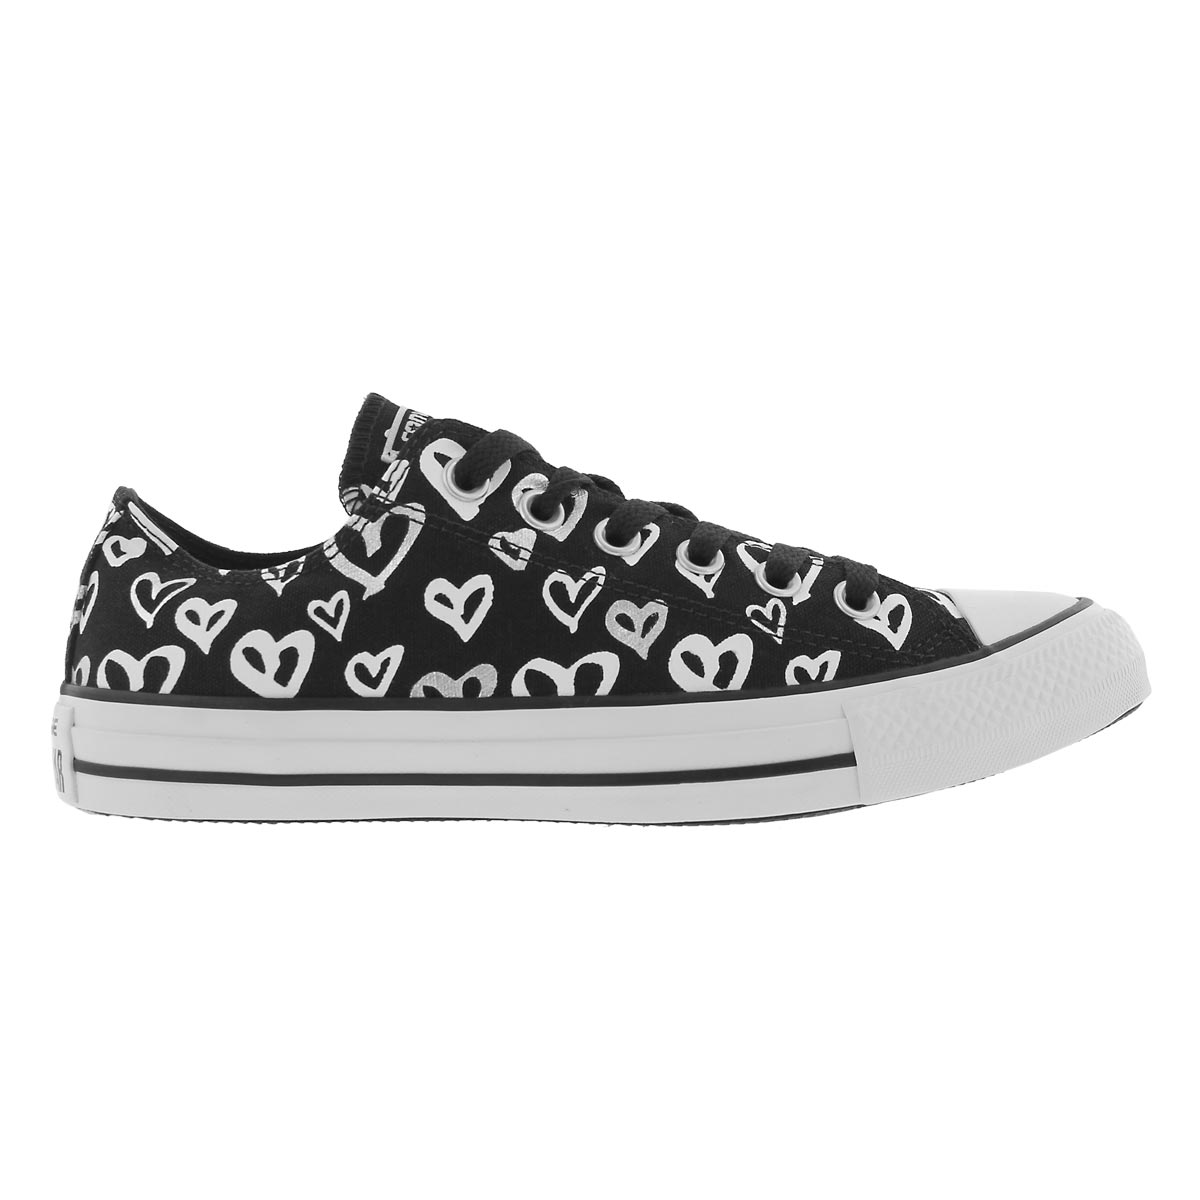 Lds CTAS Bleeding Love blk/slvr sneaker